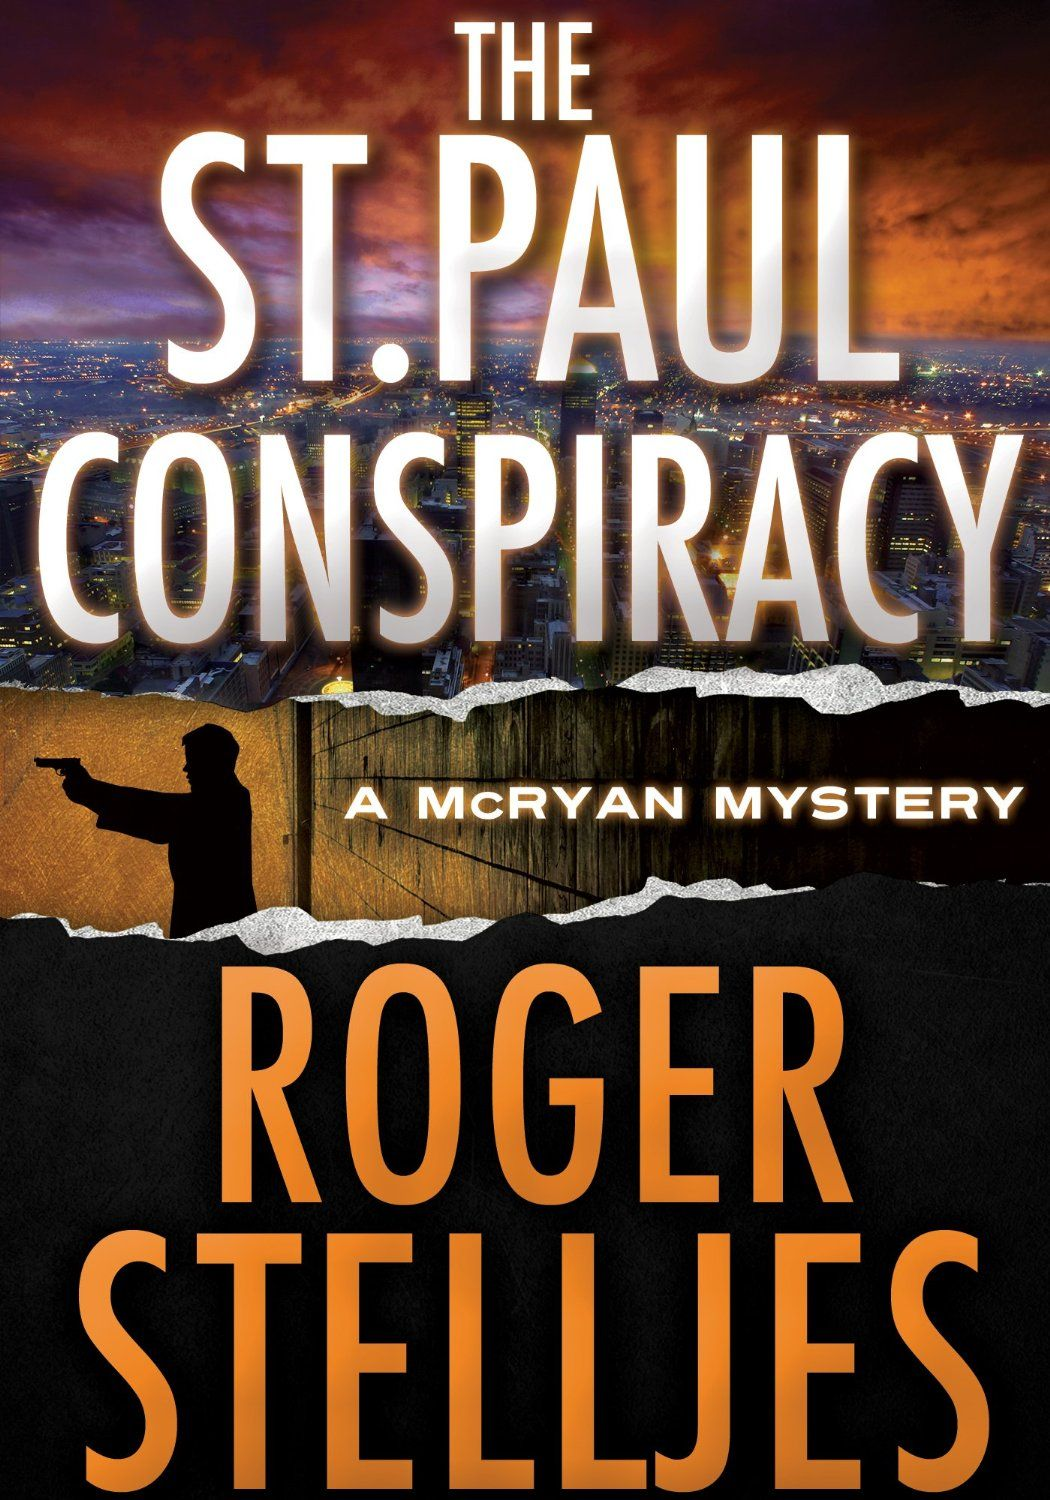 Amazon Com The St Paul Conspiracy Thriller Mcryan Mystery Series Ebook Roger Stelljes Kindle Store Suspense Books Mystery Series Mystery Thriller